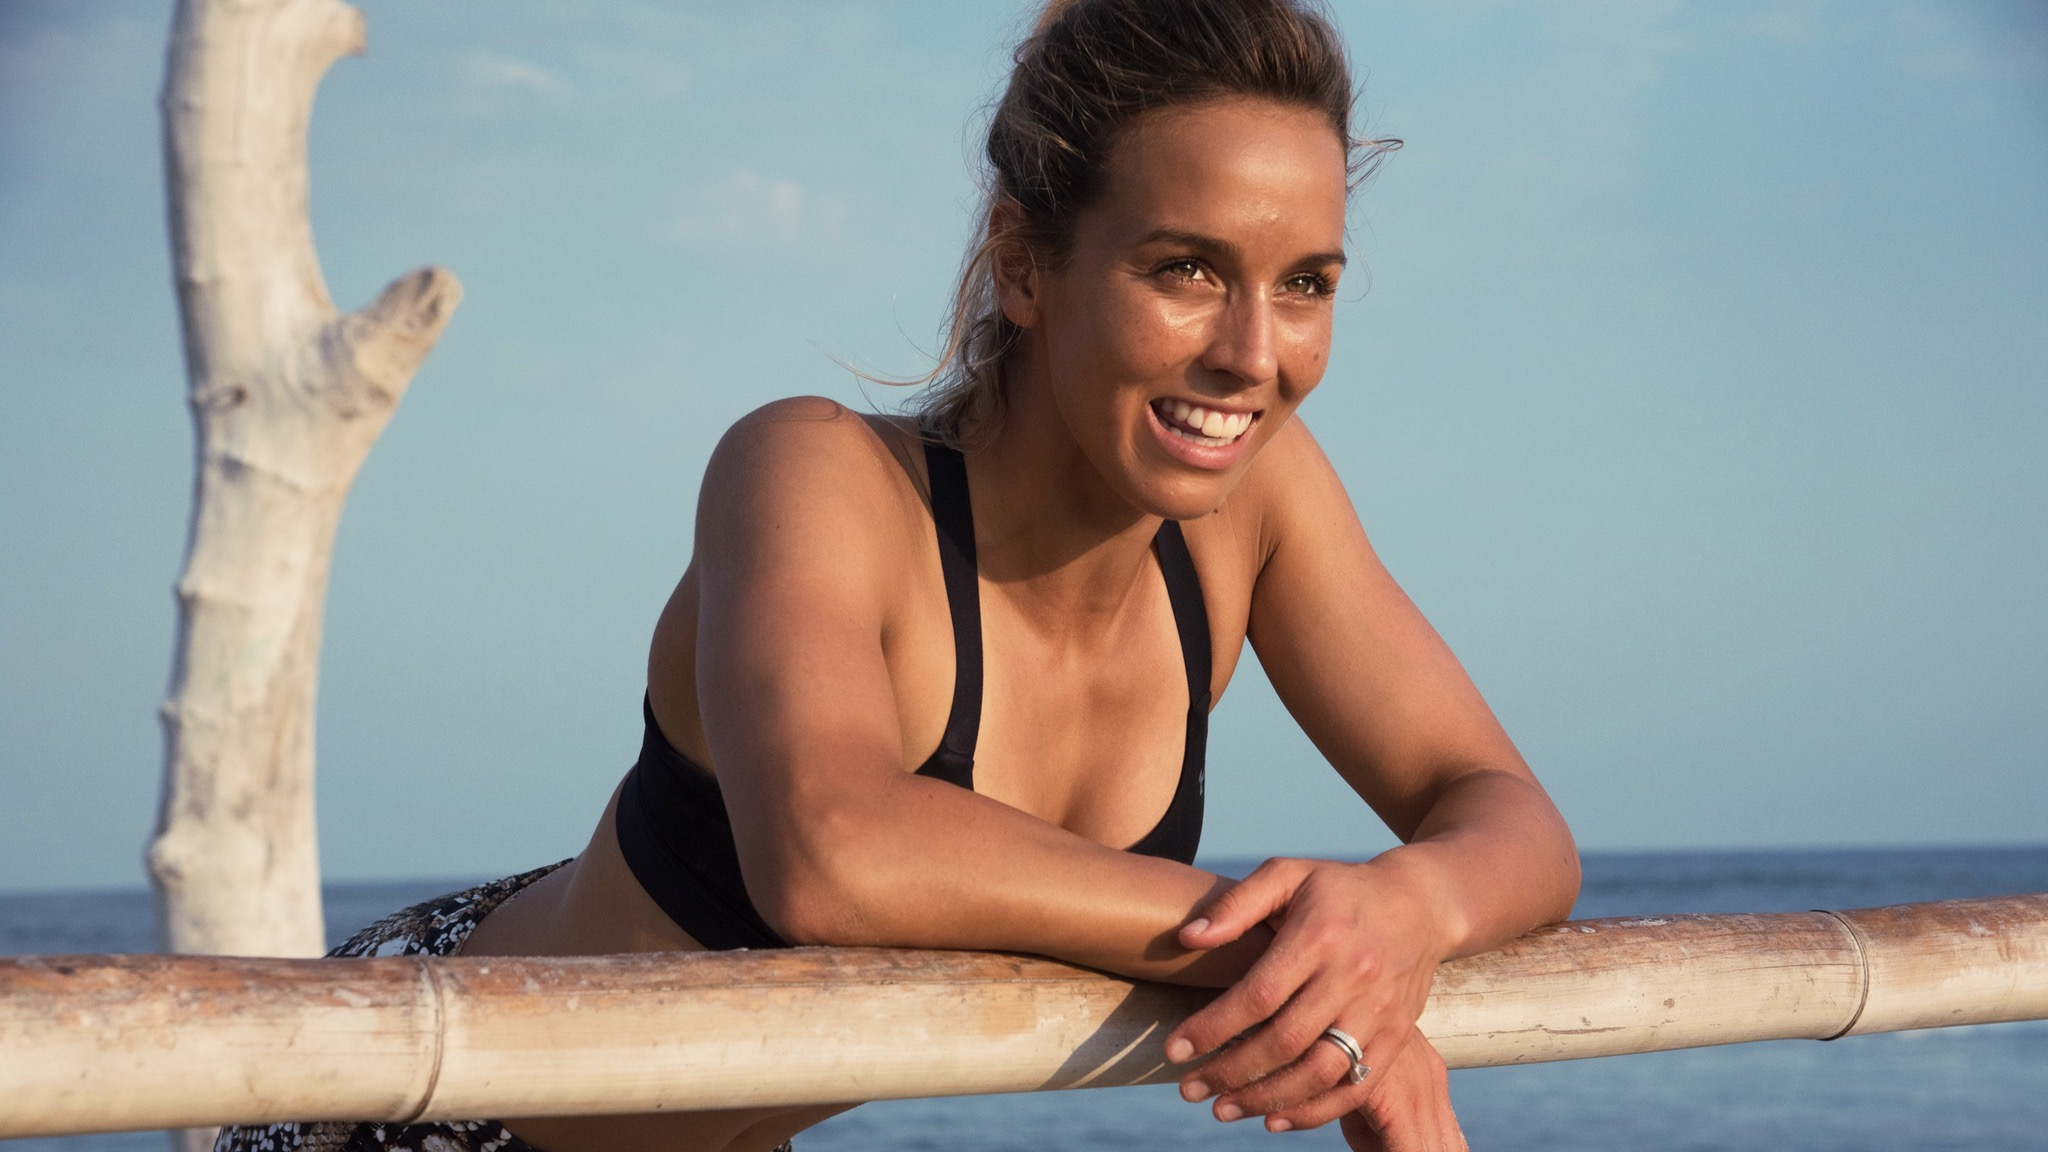 Workout with Sally Fitzgibbons